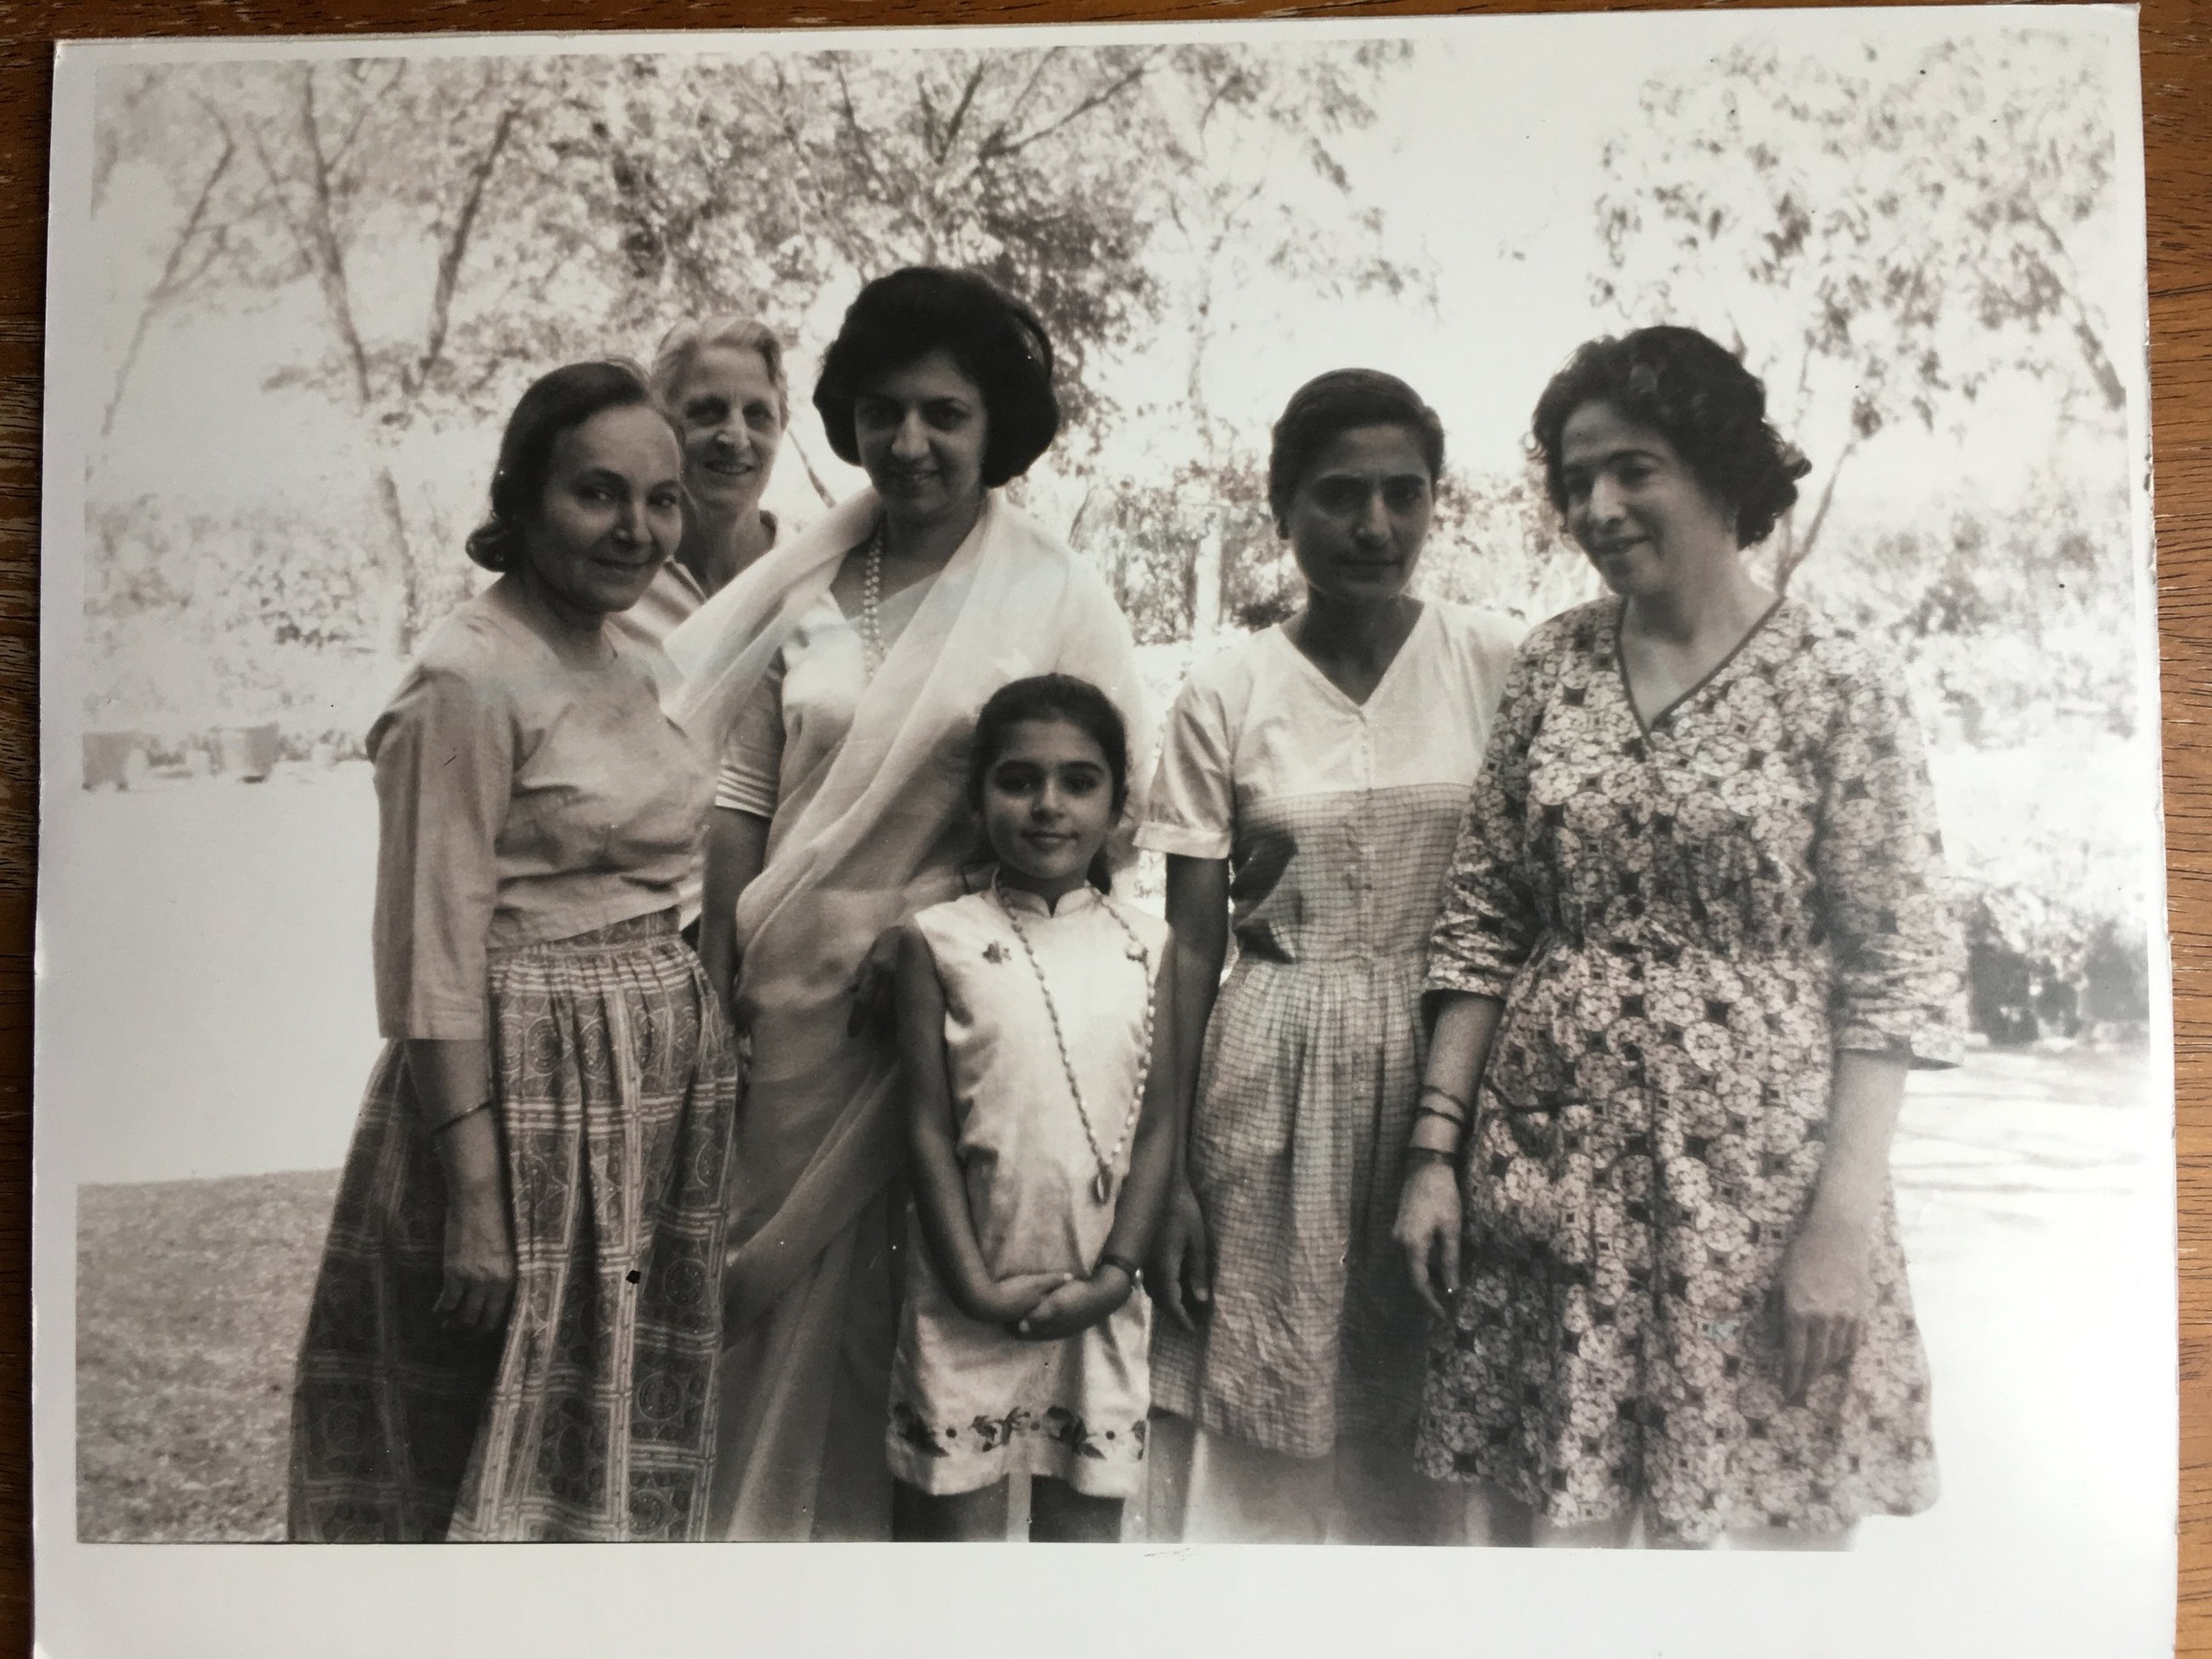 SHIREEN BONNER (center) at age seven with the women  mandali  and her mother. (Left to right): Mehera J. Irani, Rano Gayley, Franey Irani (her mother), Meheru Irani, and Mani S. Irani (Meher Baba's sister and Shireen's auntie). Shireen will share her memories of being with the women during her visits to see Meher Baba at the August 3, 2019 celebration at Meher Mount. (Photo: Shireen Bonner)